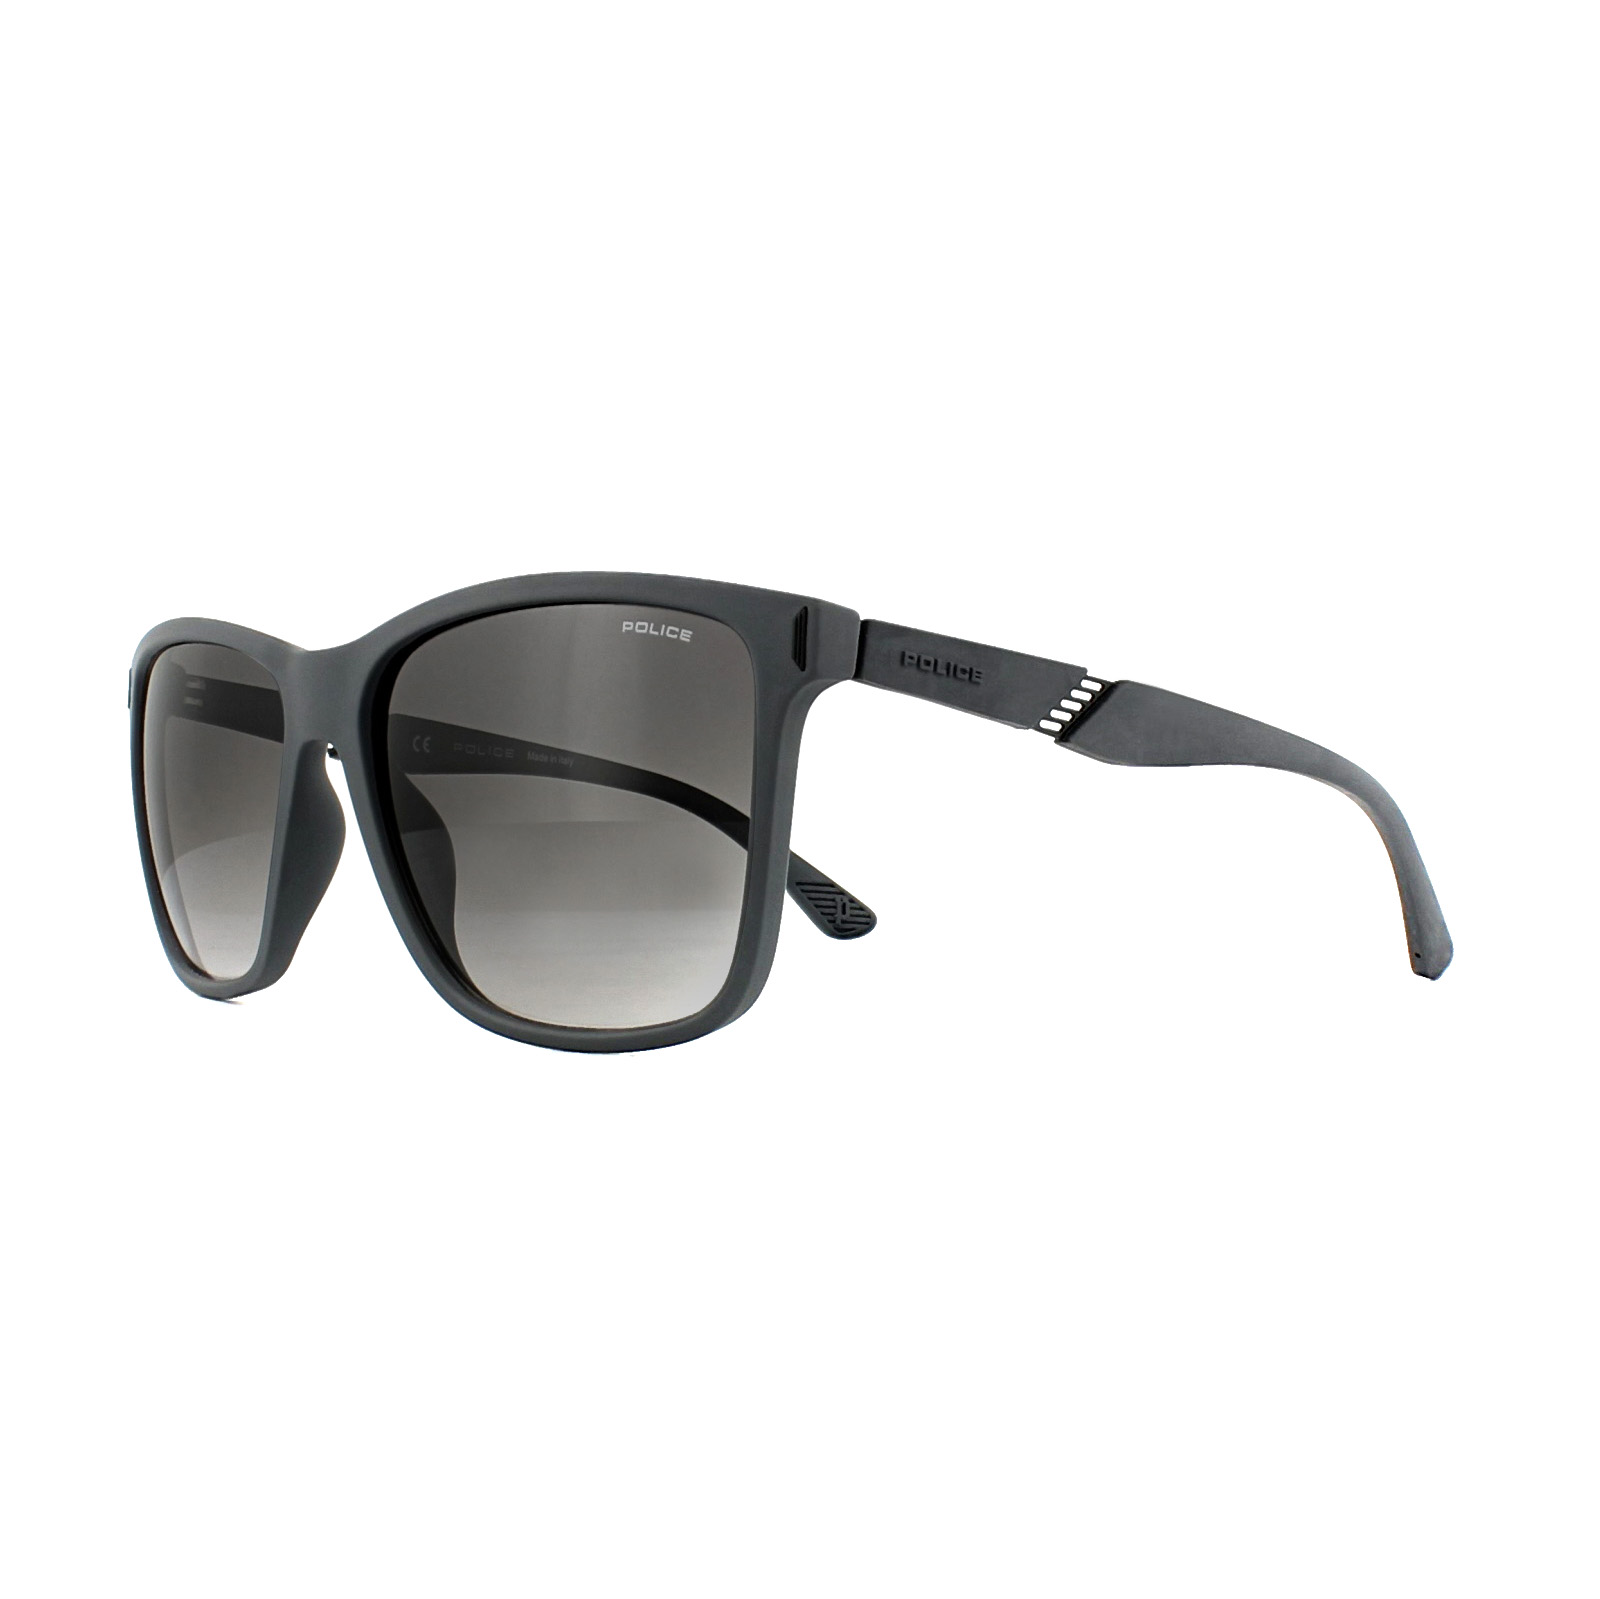 9a7f8eca32 Cheap Police SPL529 Speed 10 Sunglasses - Discounted Sunglasses